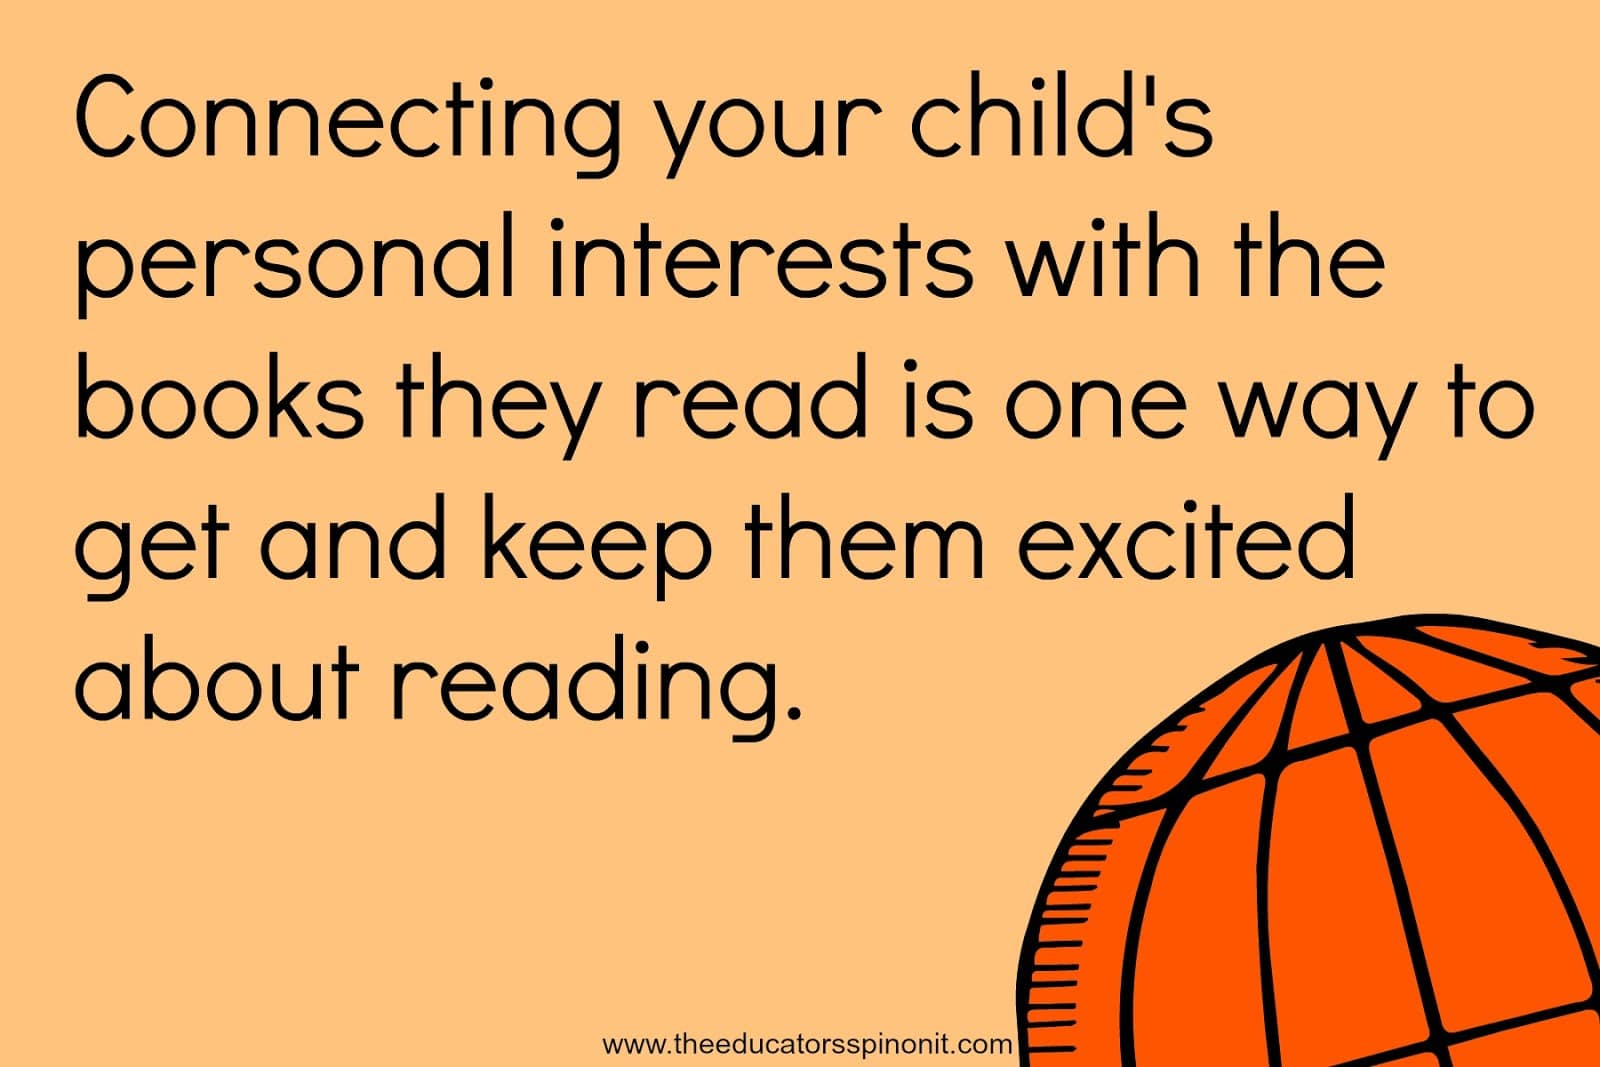 Connecting your child's personal interests with the books they read is one way to get and keep them excited about reading.